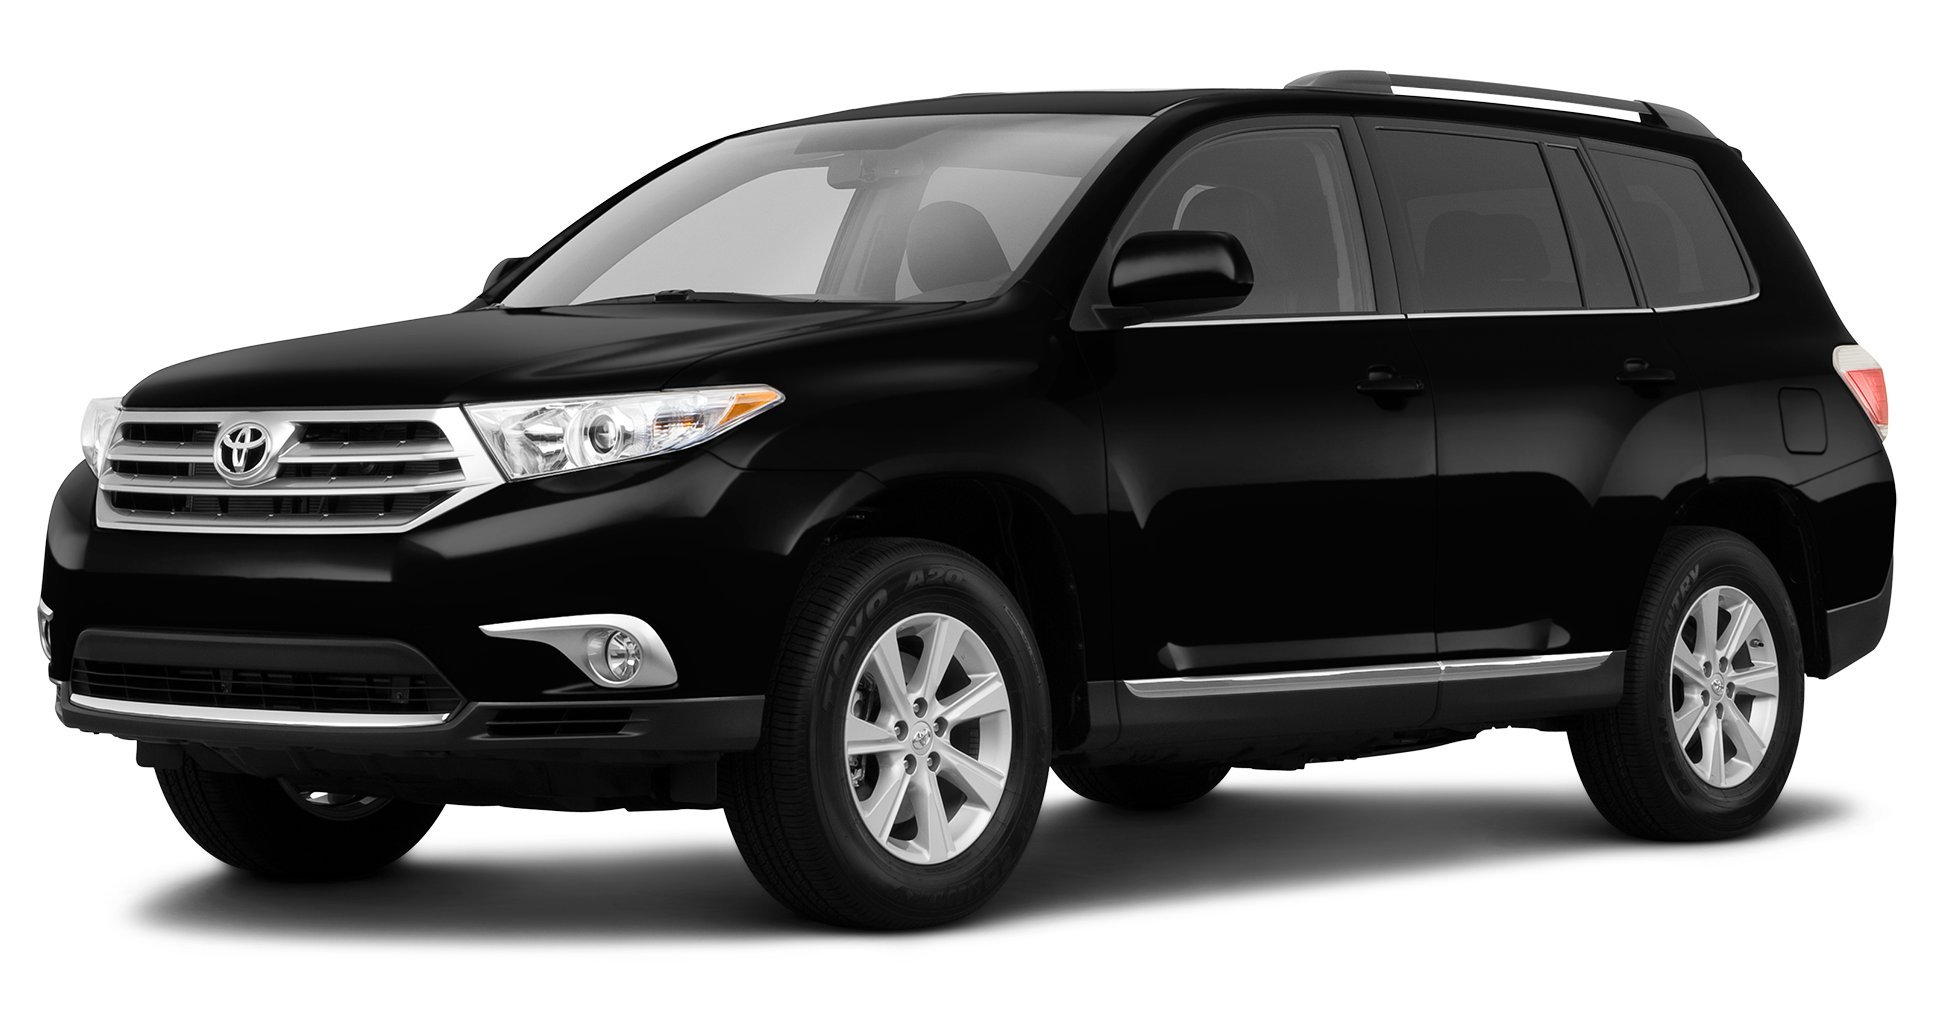 2011 toyota highlander reviews images and specs vehicles. Black Bedroom Furniture Sets. Home Design Ideas